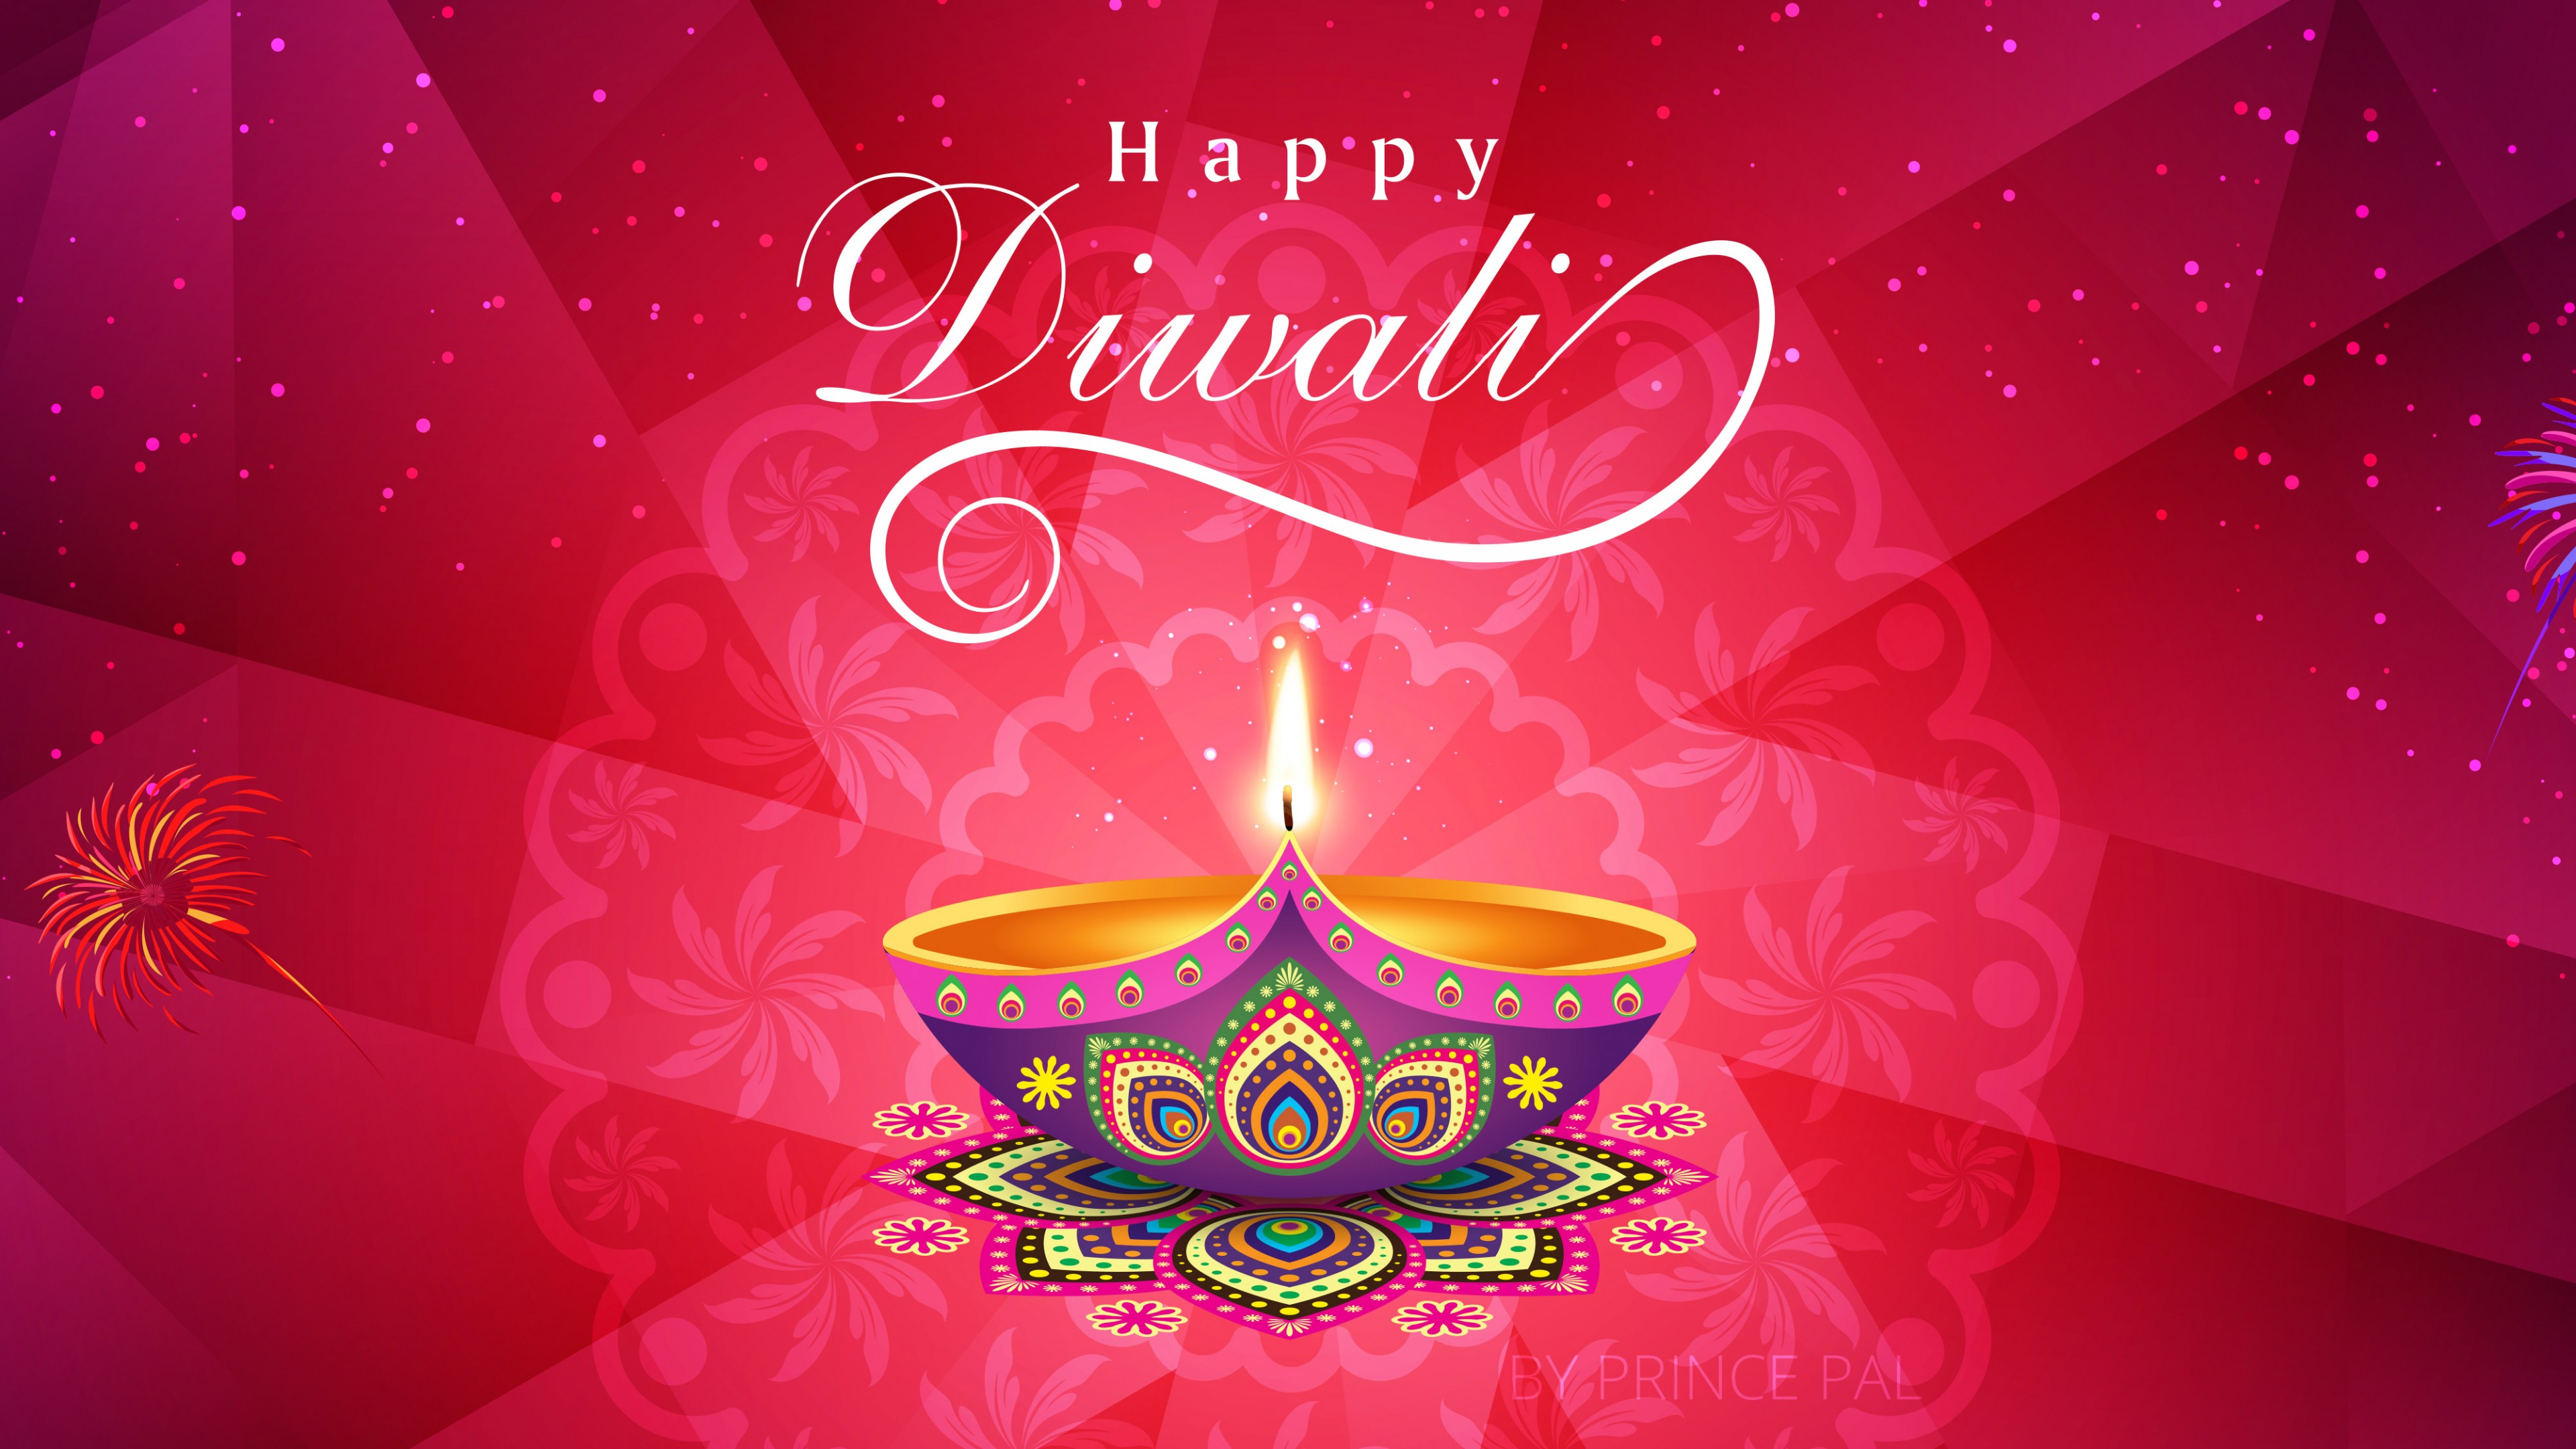 Diwali Festival of Lights 4K HD Wallpaper 3840x2160